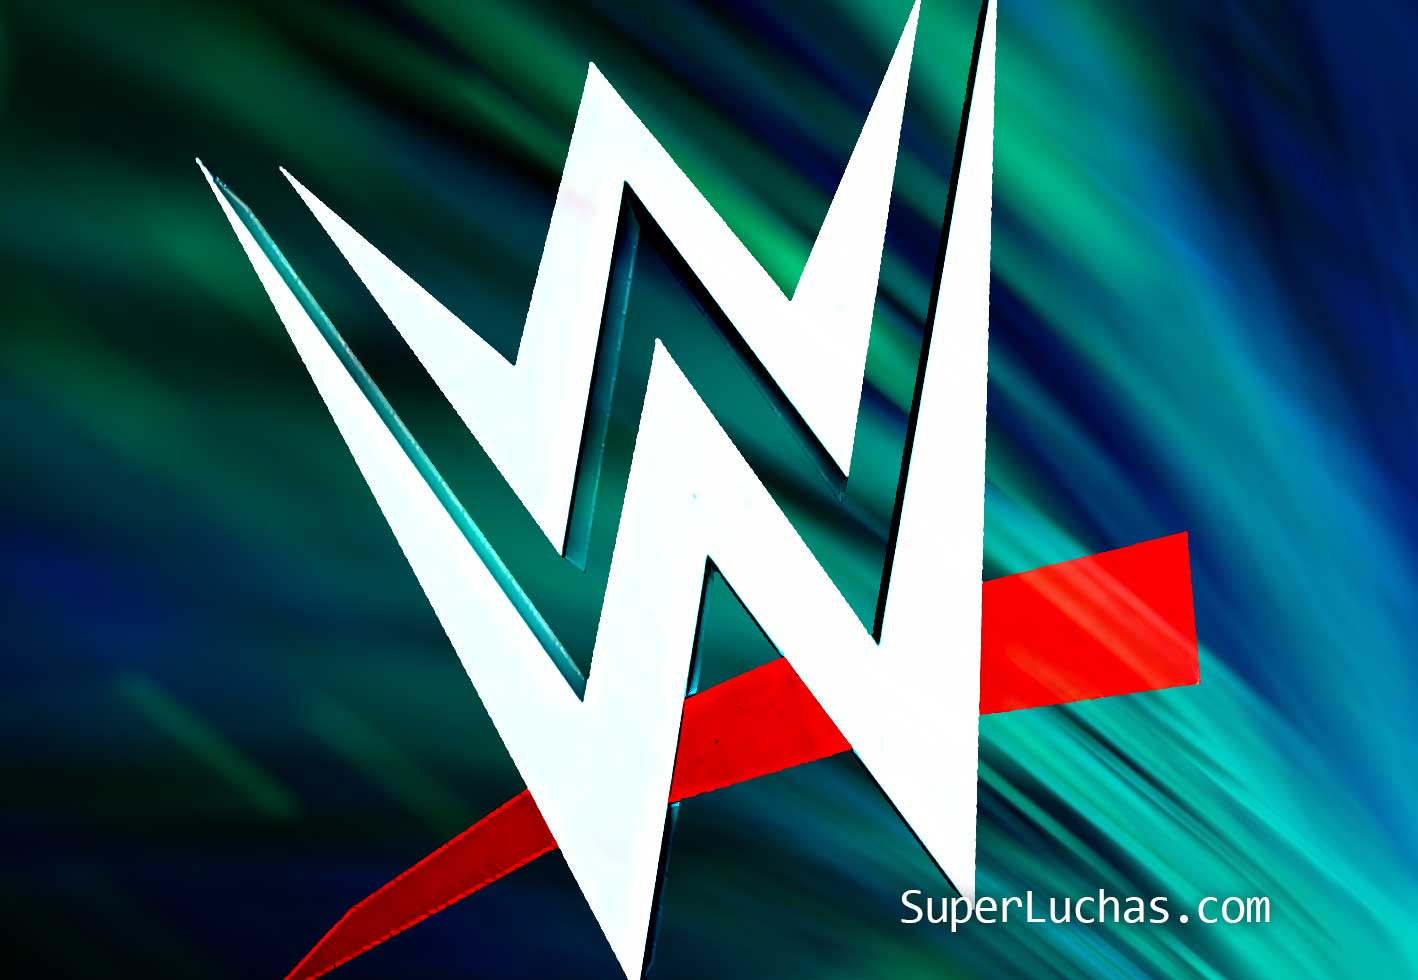 WWE considera otro Superstar Shake-Up dentro de pocos meses 1